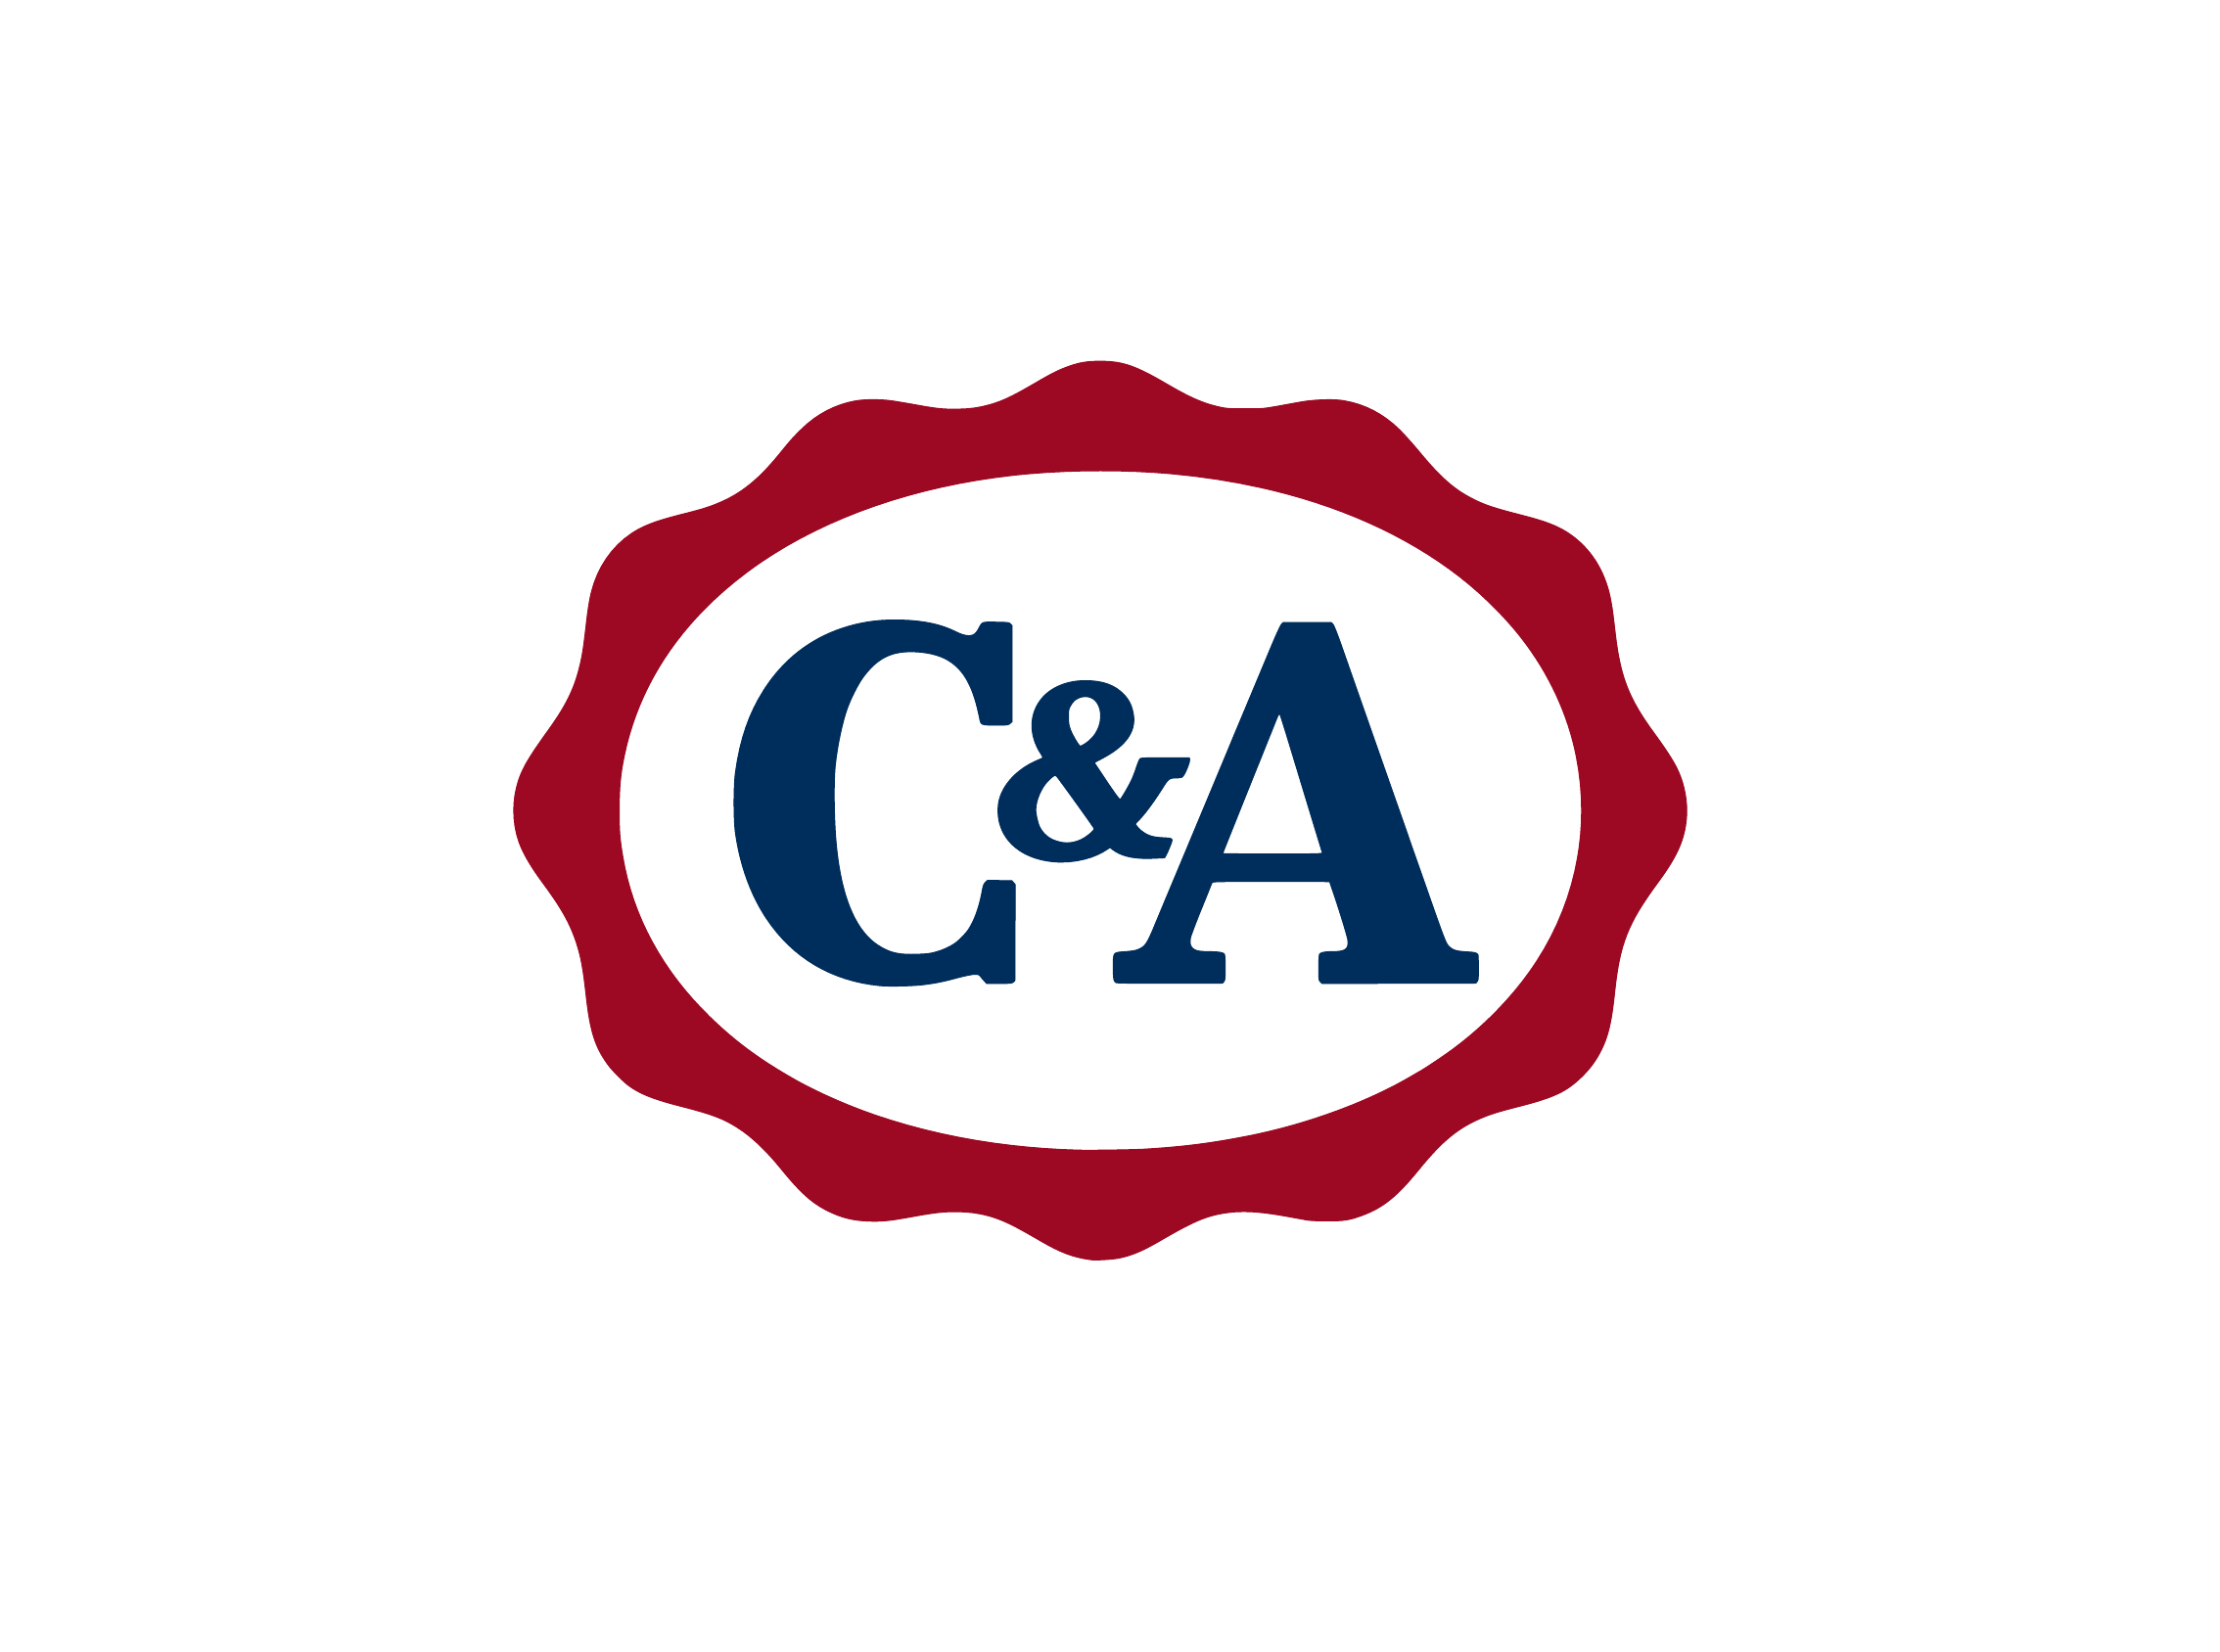 C&a clothing store